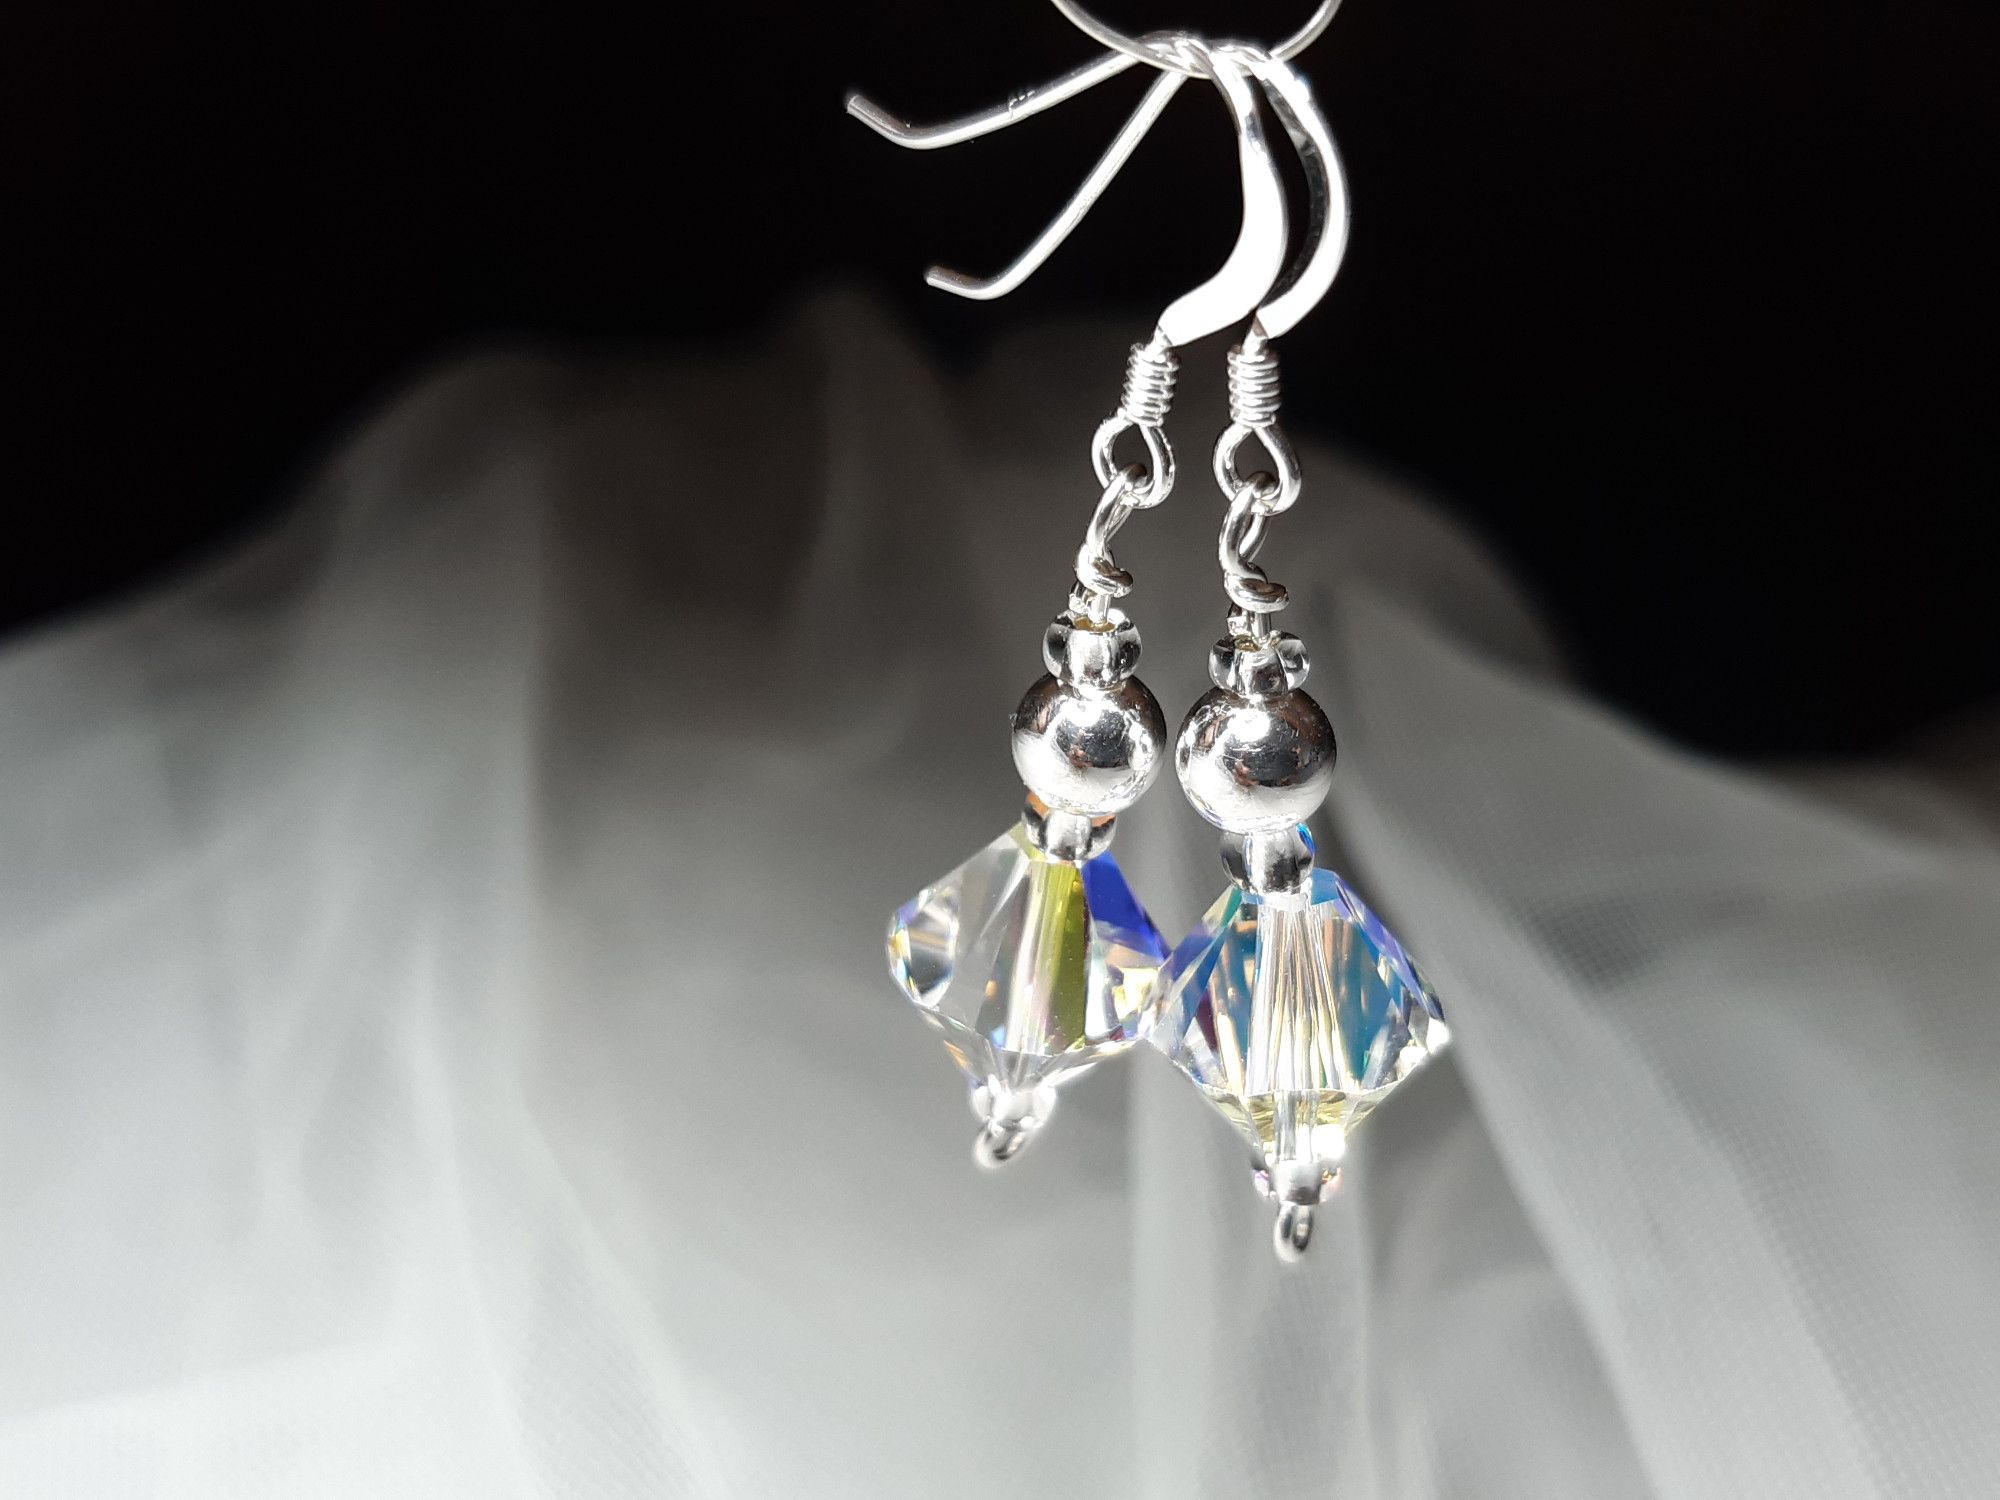 Occasion-bridal-wedding-swarovski crystal+sterling silver earrings-2.jpg